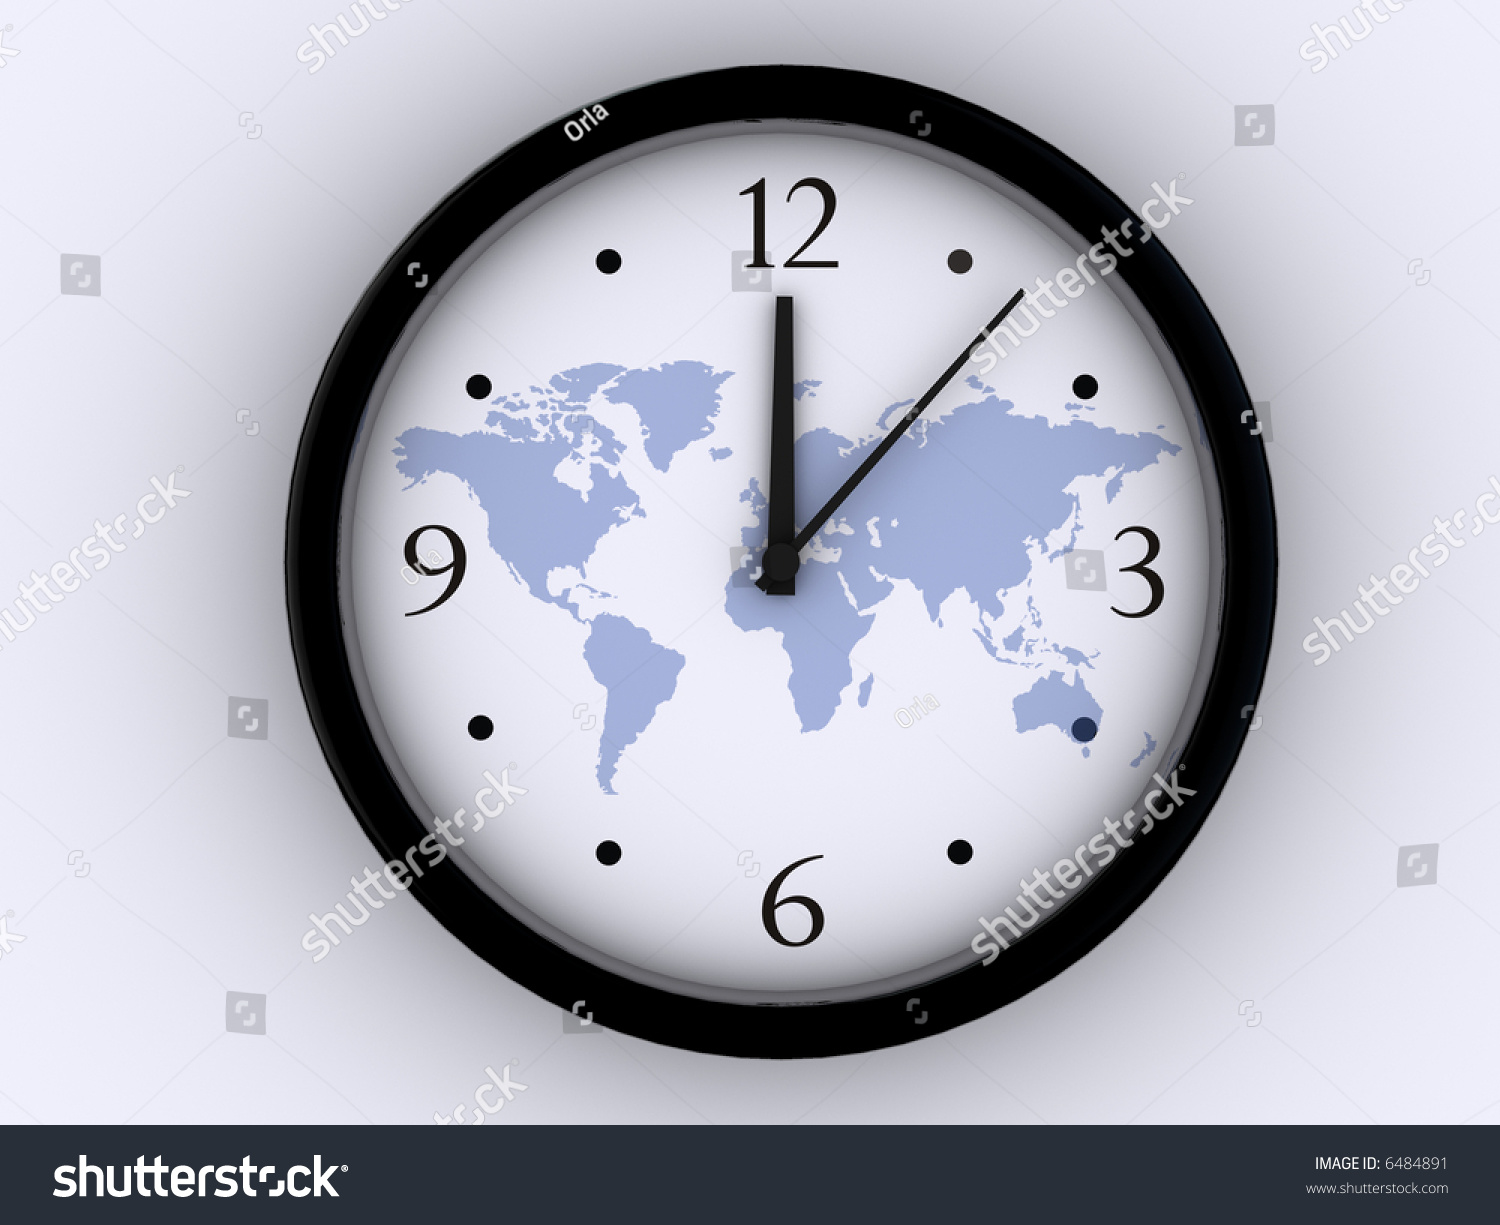 Simple clock world map on background stock illustration 6484891 simple clock world map on background stock illustration 6484891 shutterstock gumiabroncs Images